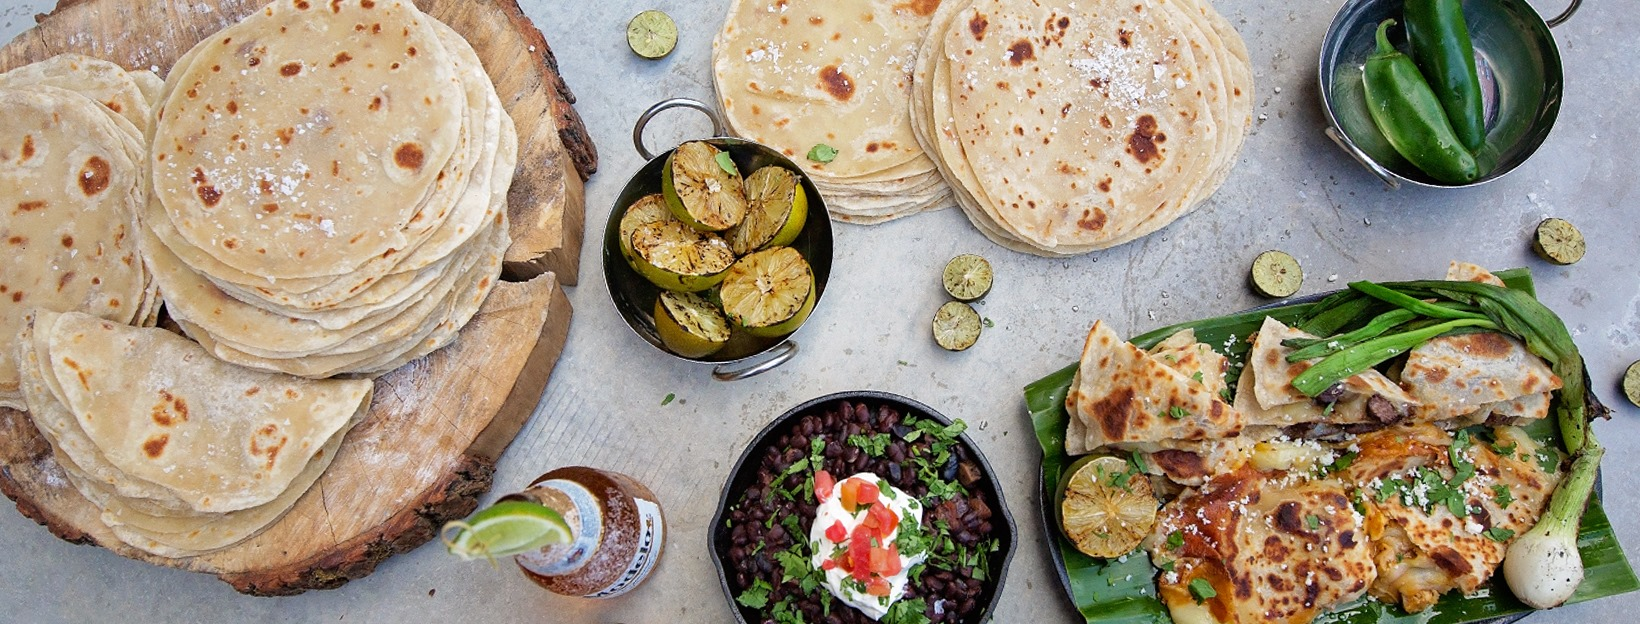 Tortillas, grilled limes, beer, beans, and quesadillas on a concrete background